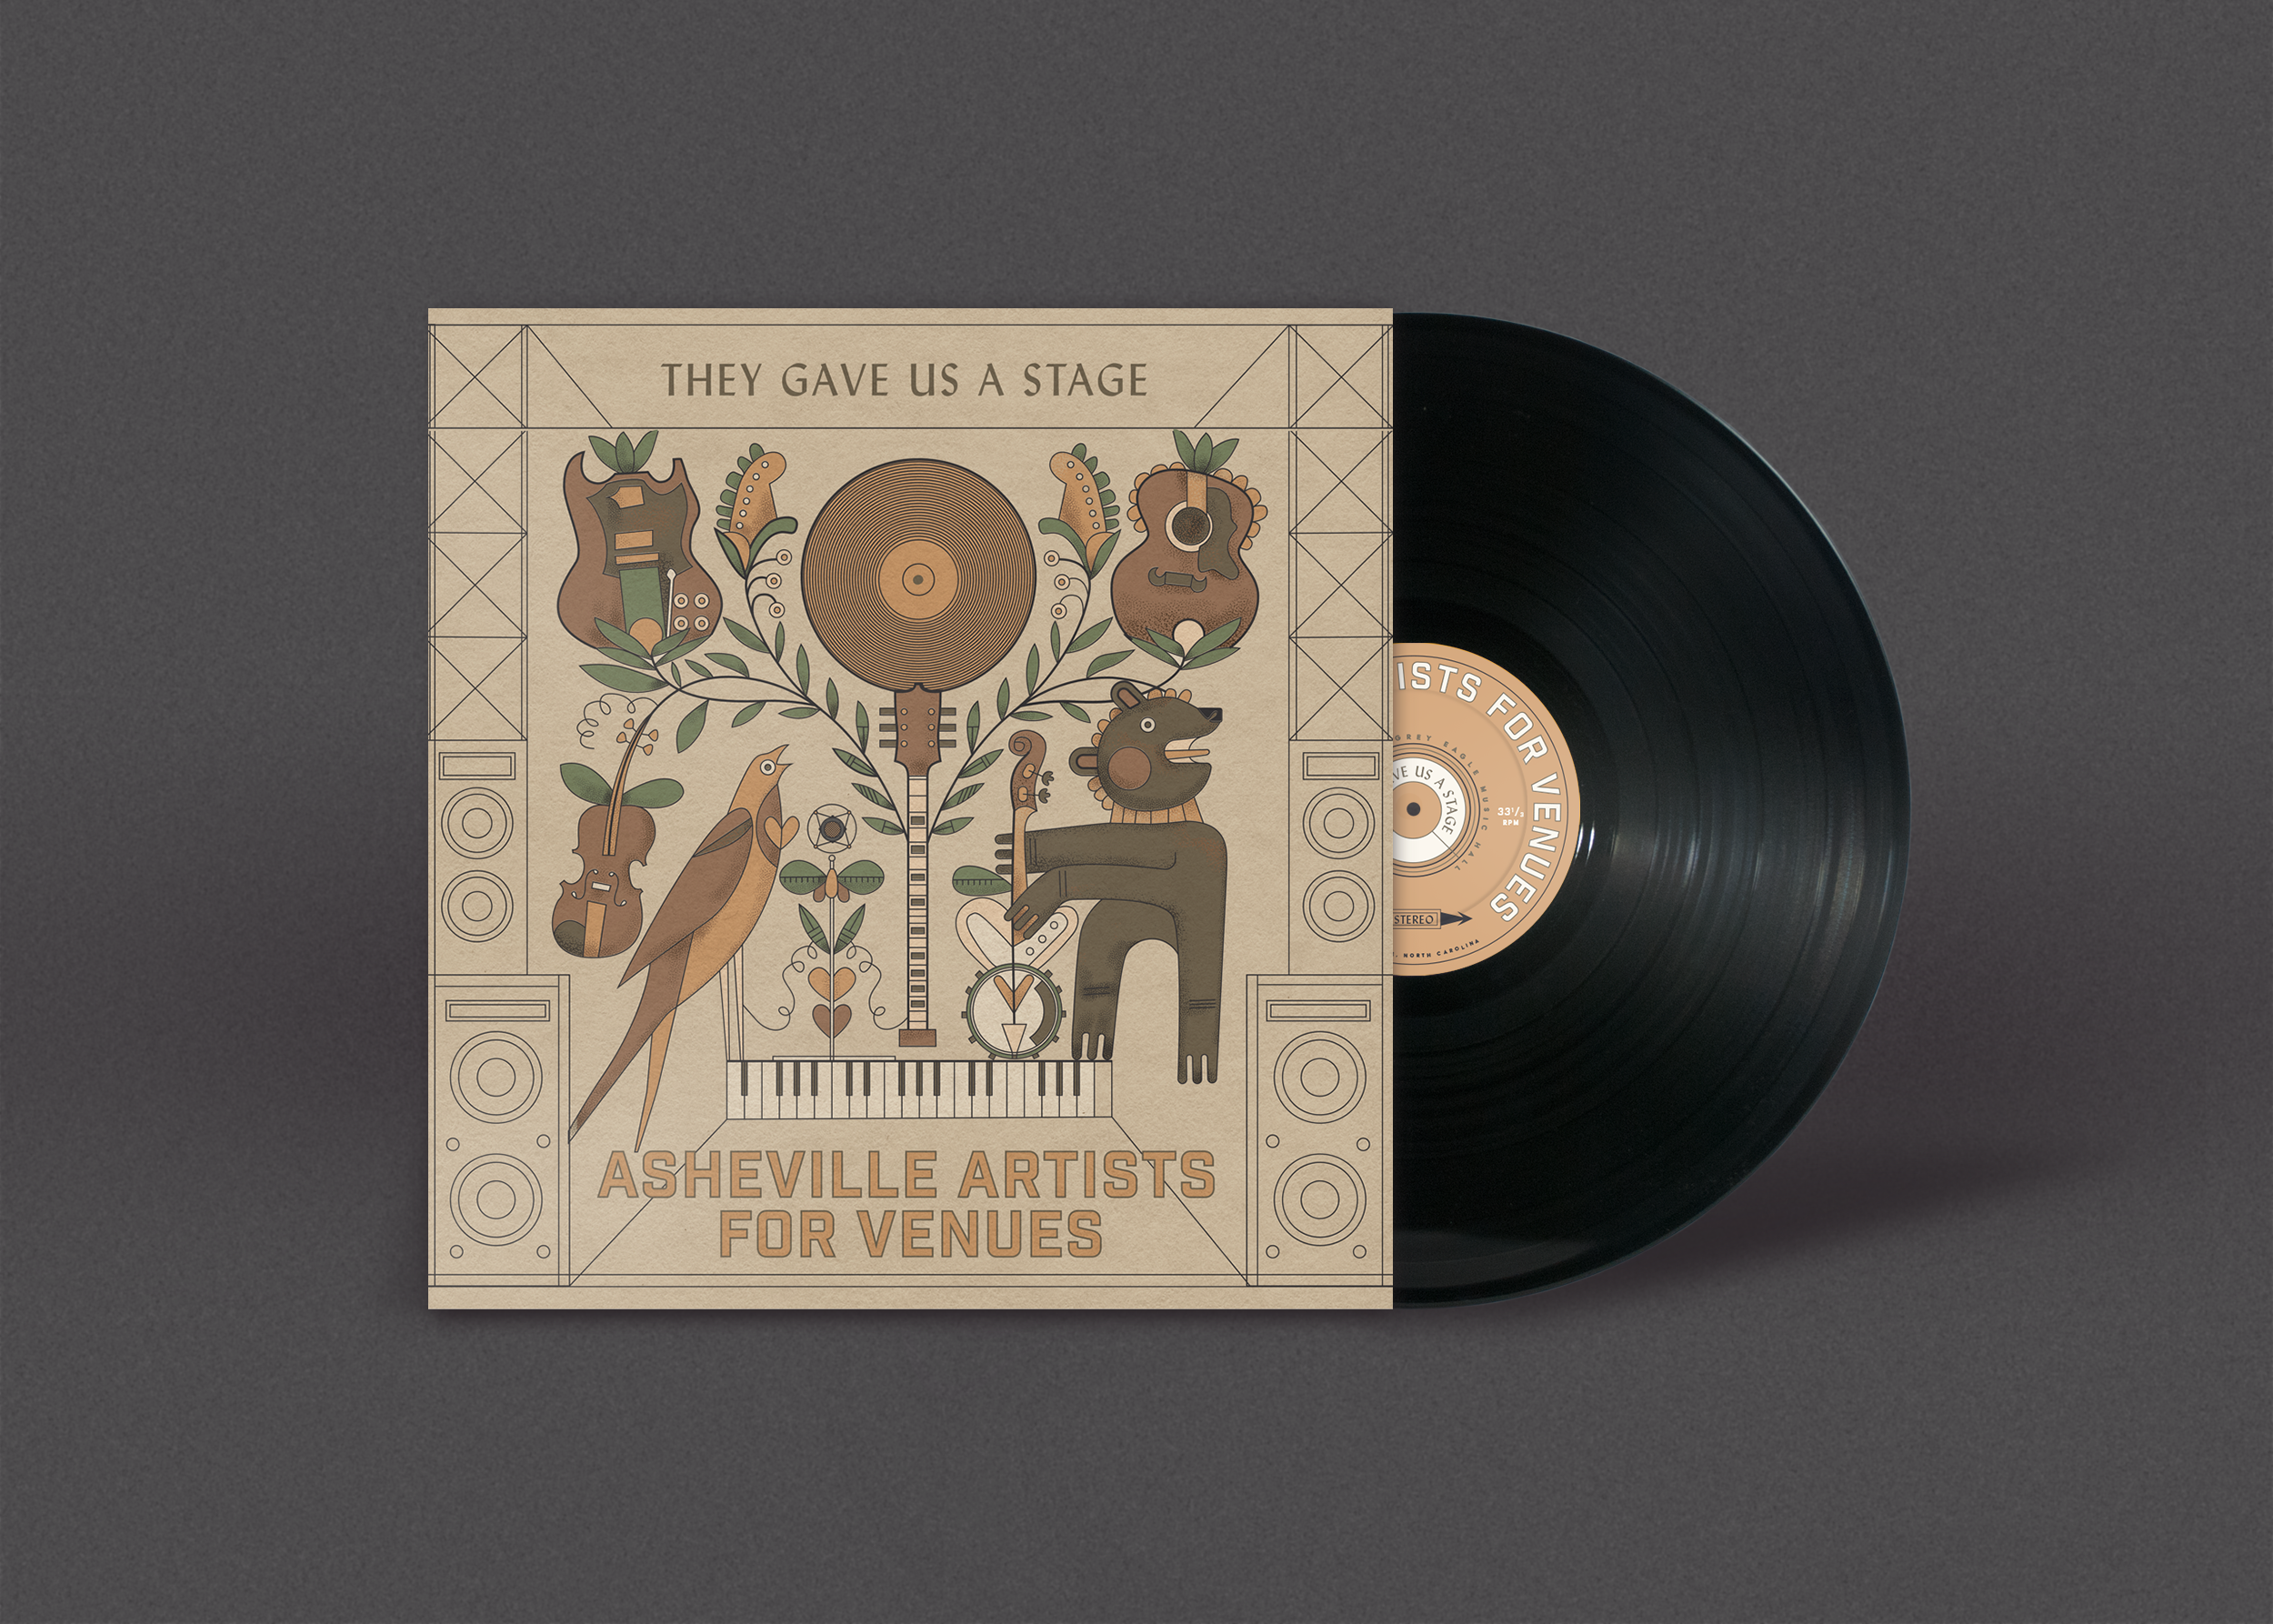 Help Asheville Local Venues By Backing This Compilation Record